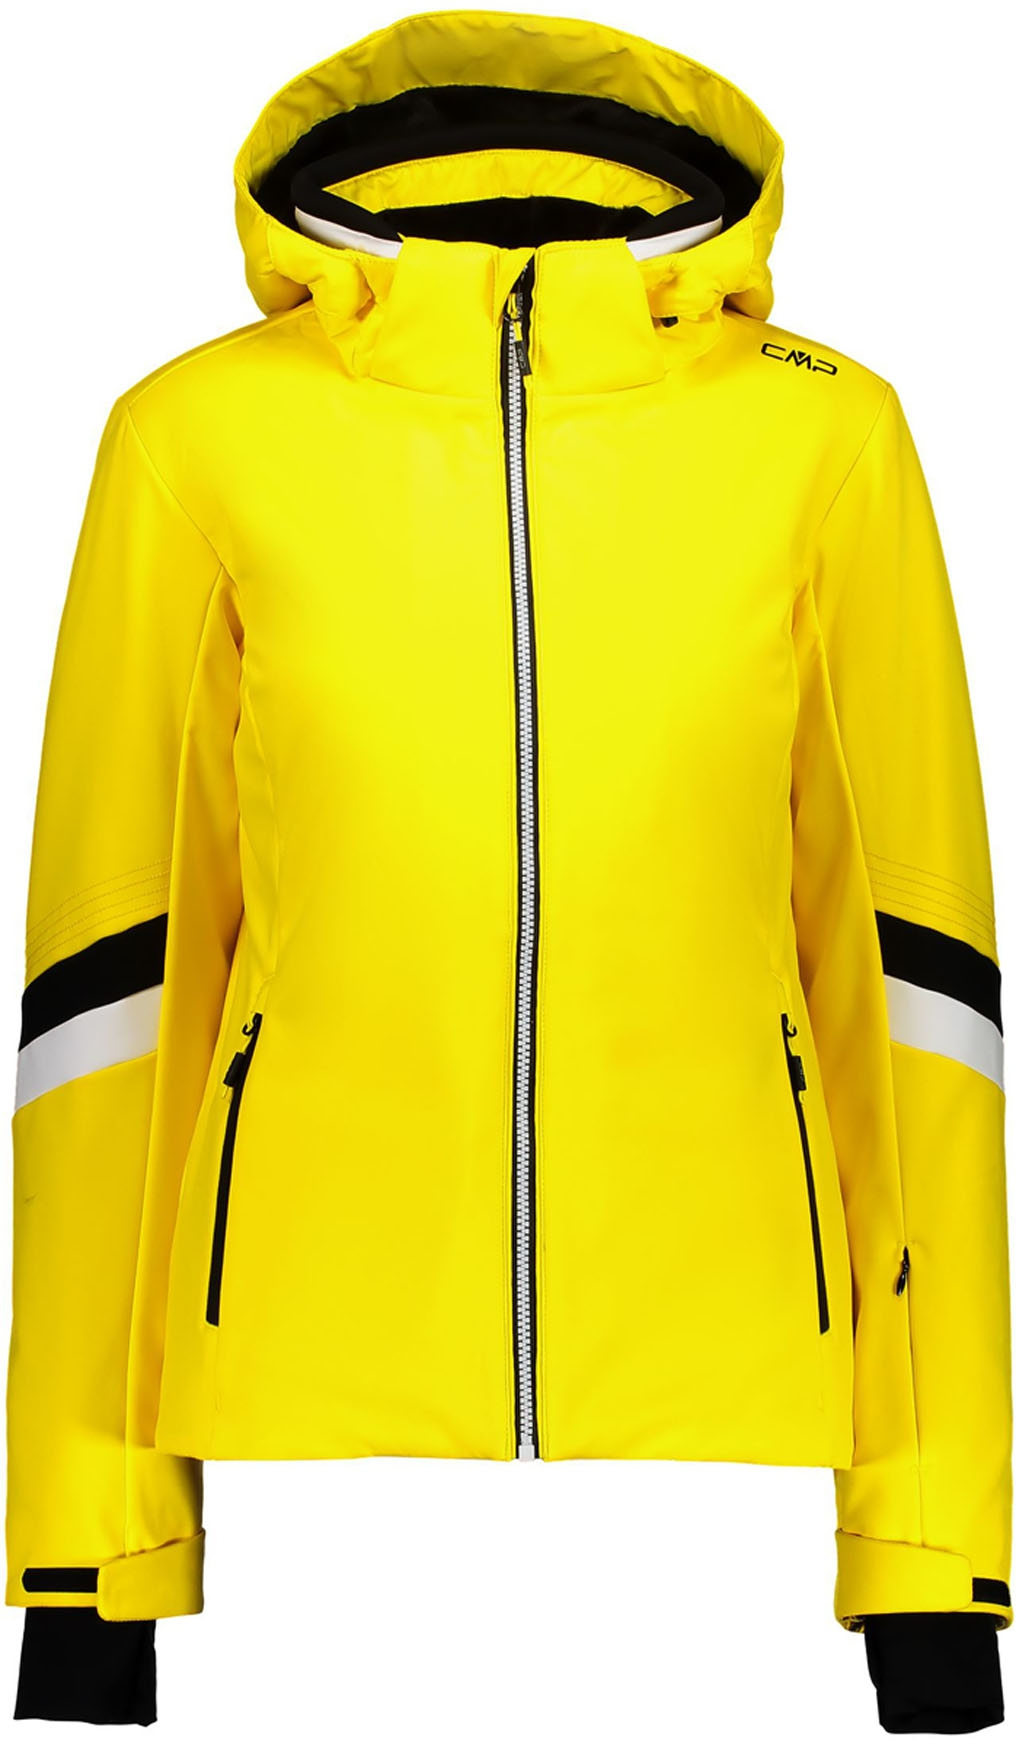 Woman Jacket Zip Hood Yellow